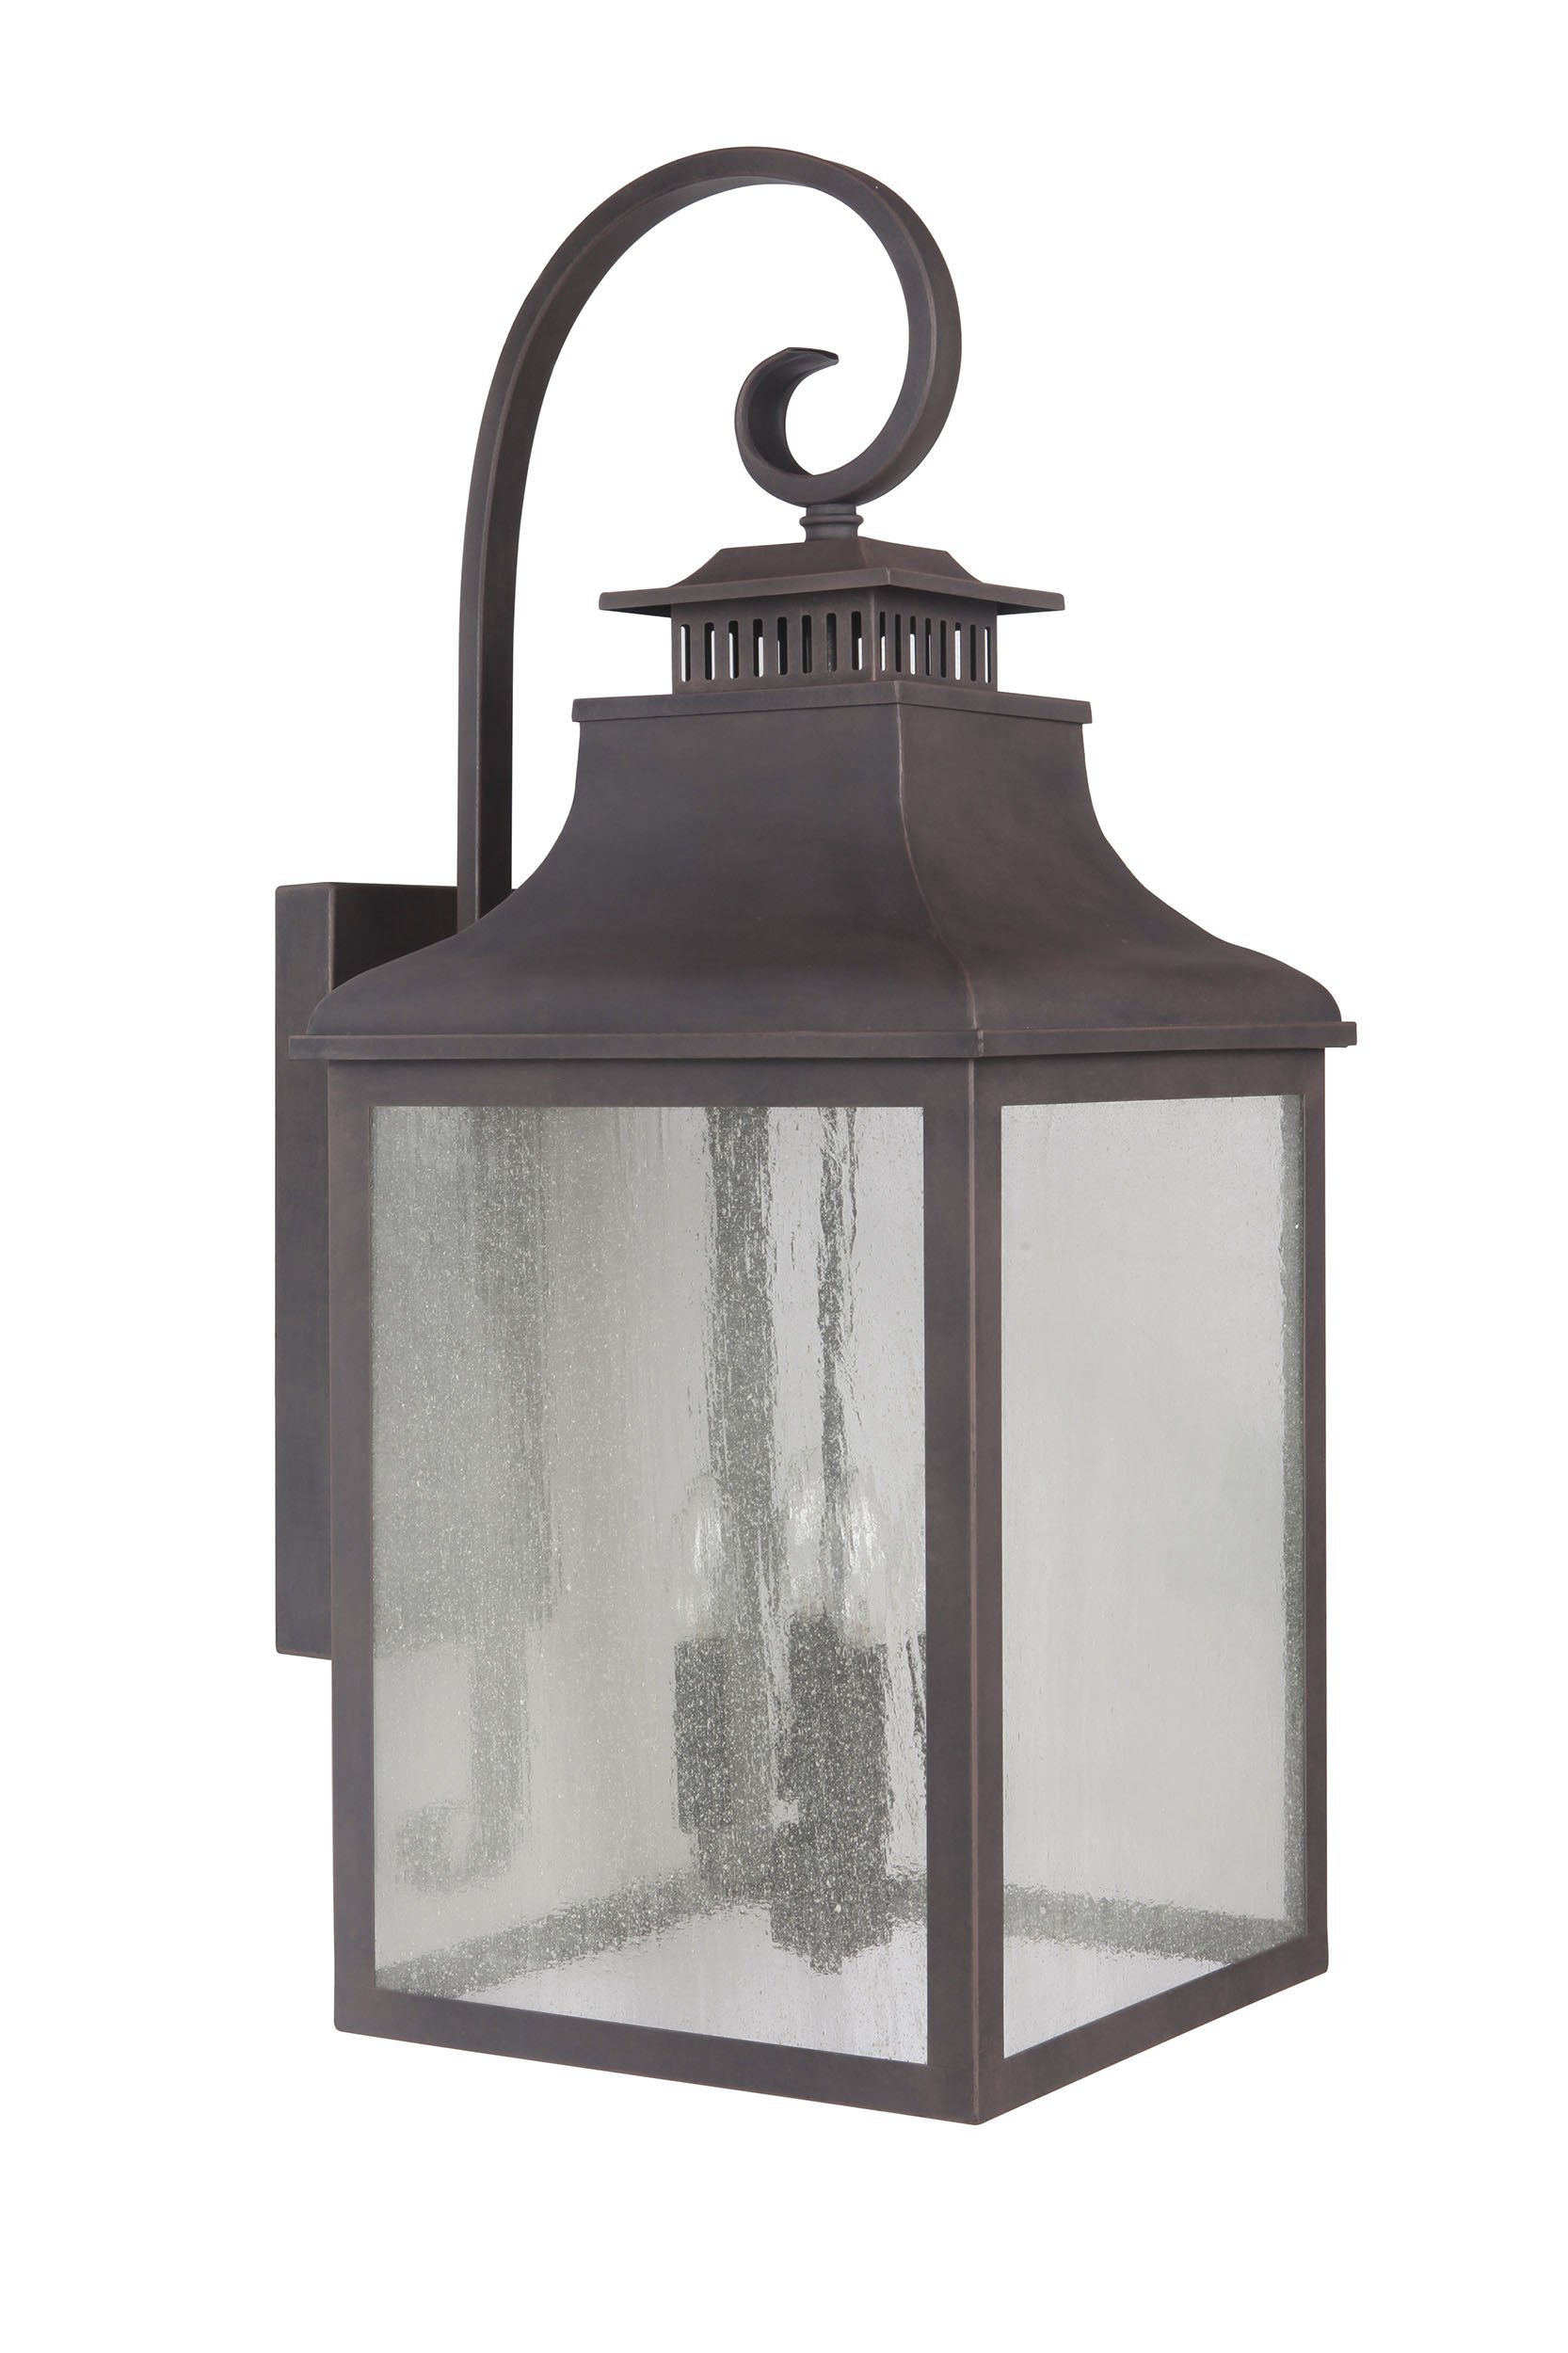 Y Decor EL2285RT Modern, Transitional, Traditional 3 Light Rustic Bronze Exterior Outdoor Light Fixture with Clear Seedy Large Glass By Y Décor, , Brown